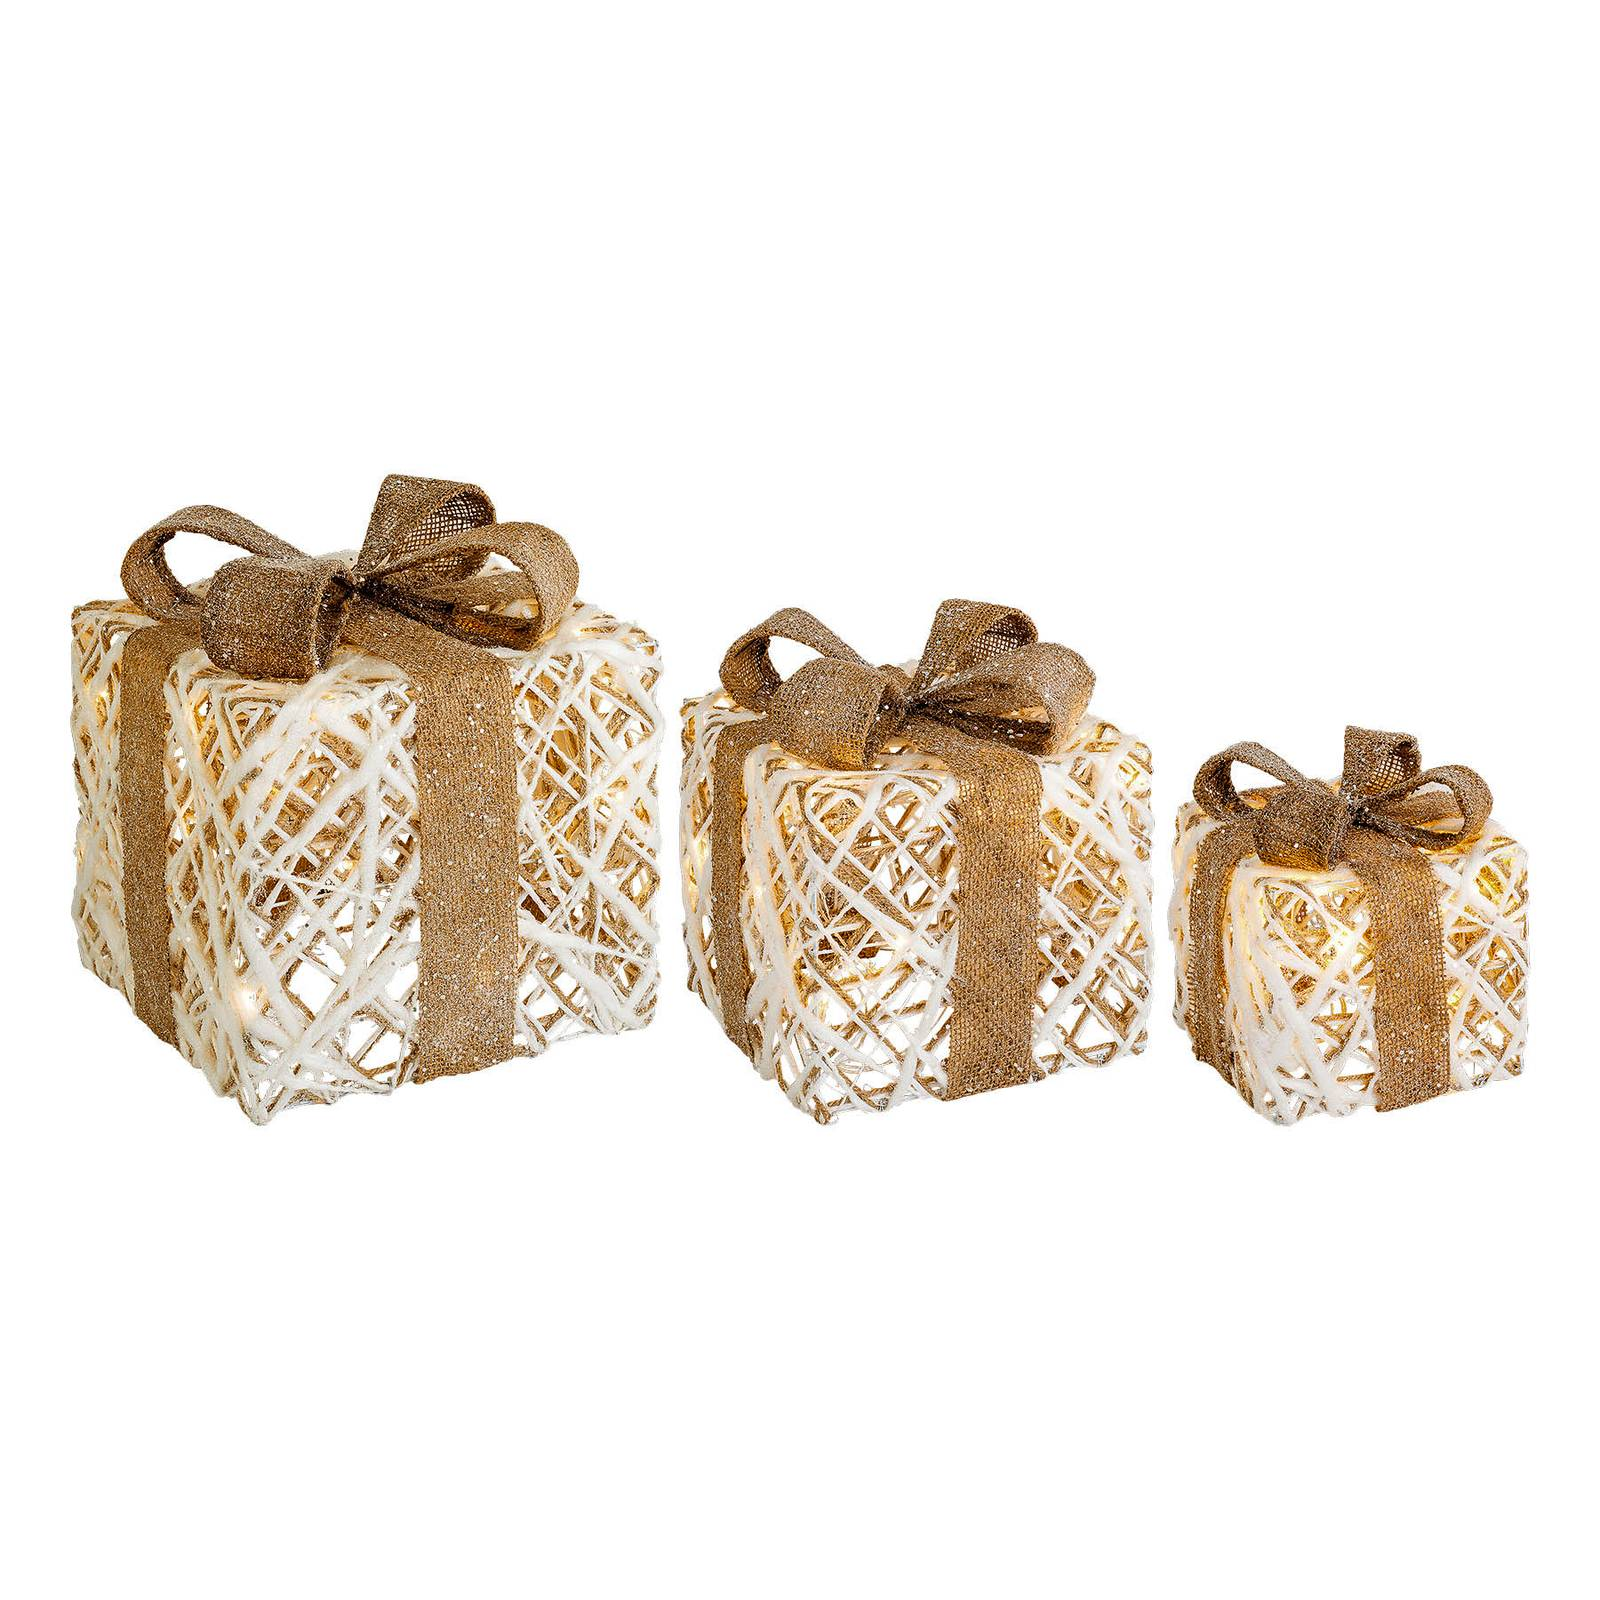 Lumineo Objects LED gift box 3-pack natural/brown